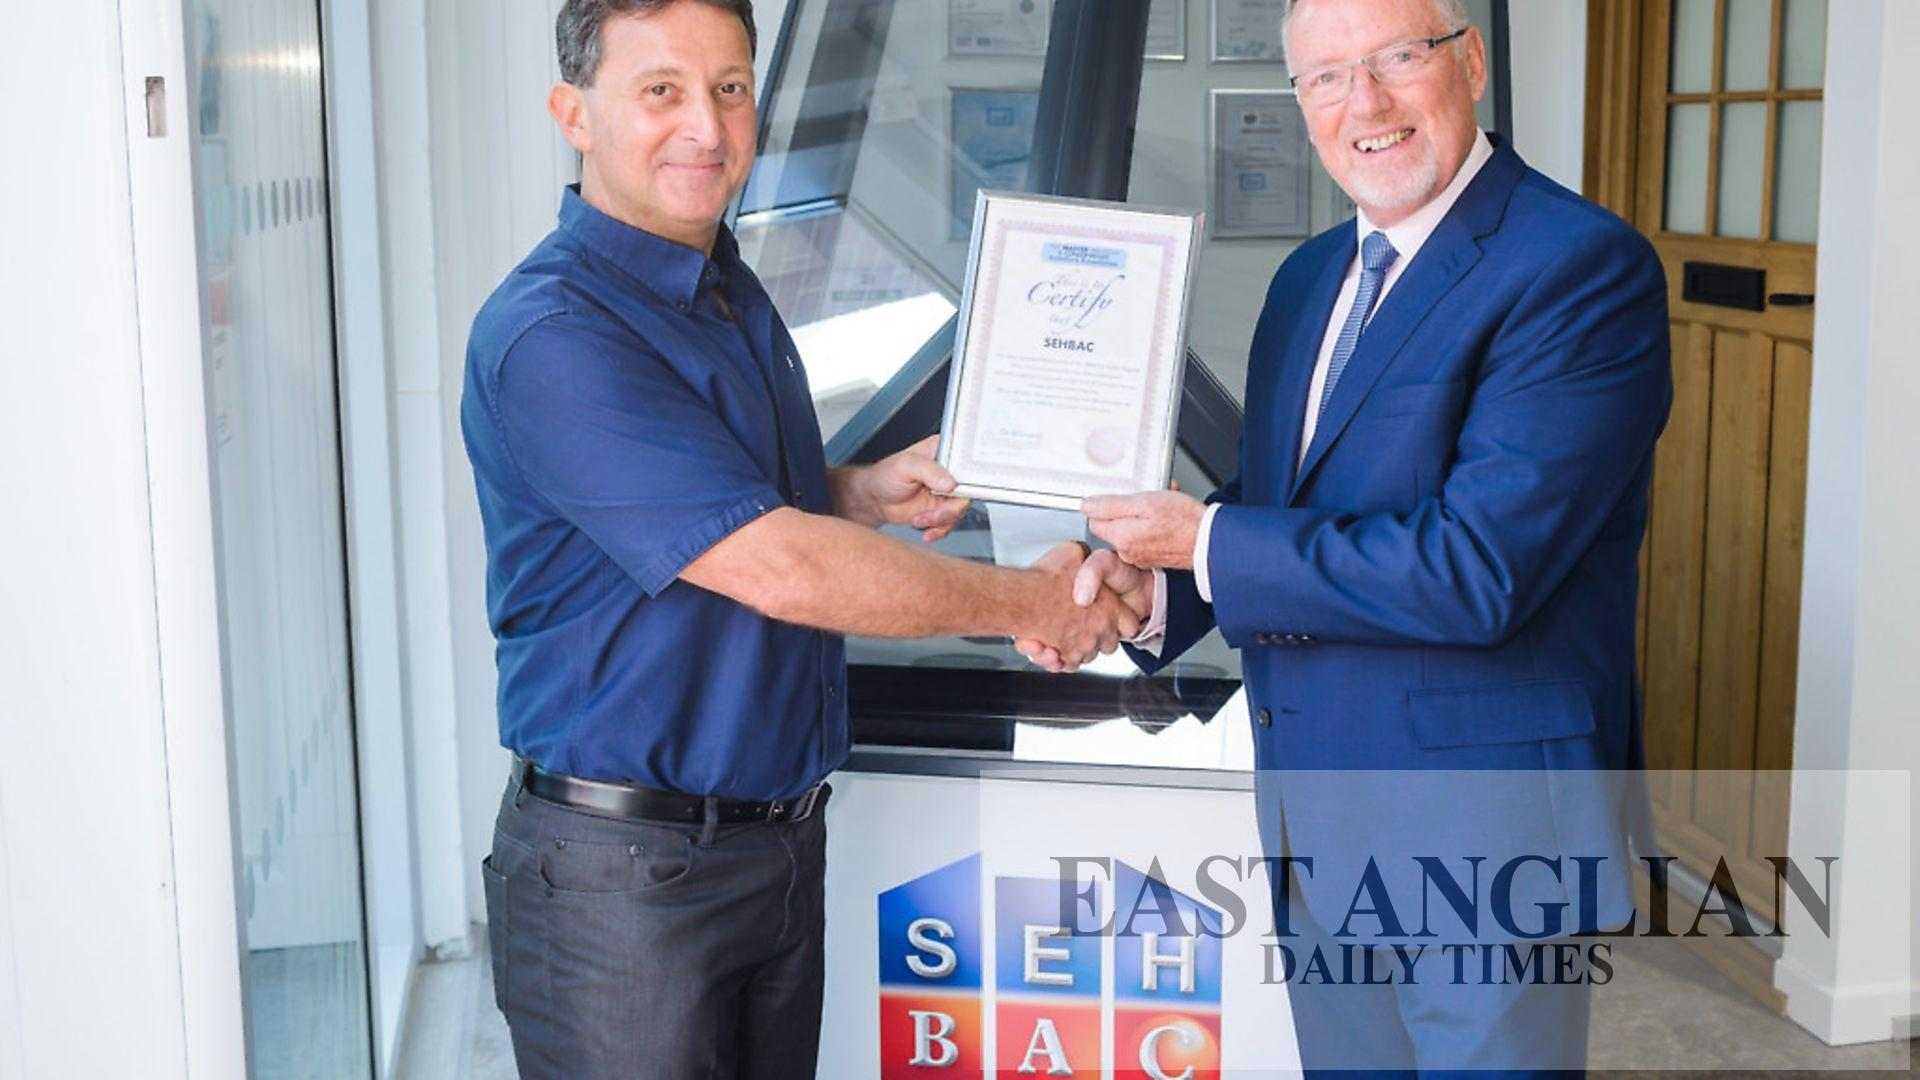 Customer Care Award Nomination For Seh Bac Windows And Home Improvements Company East Anglian Daily Times